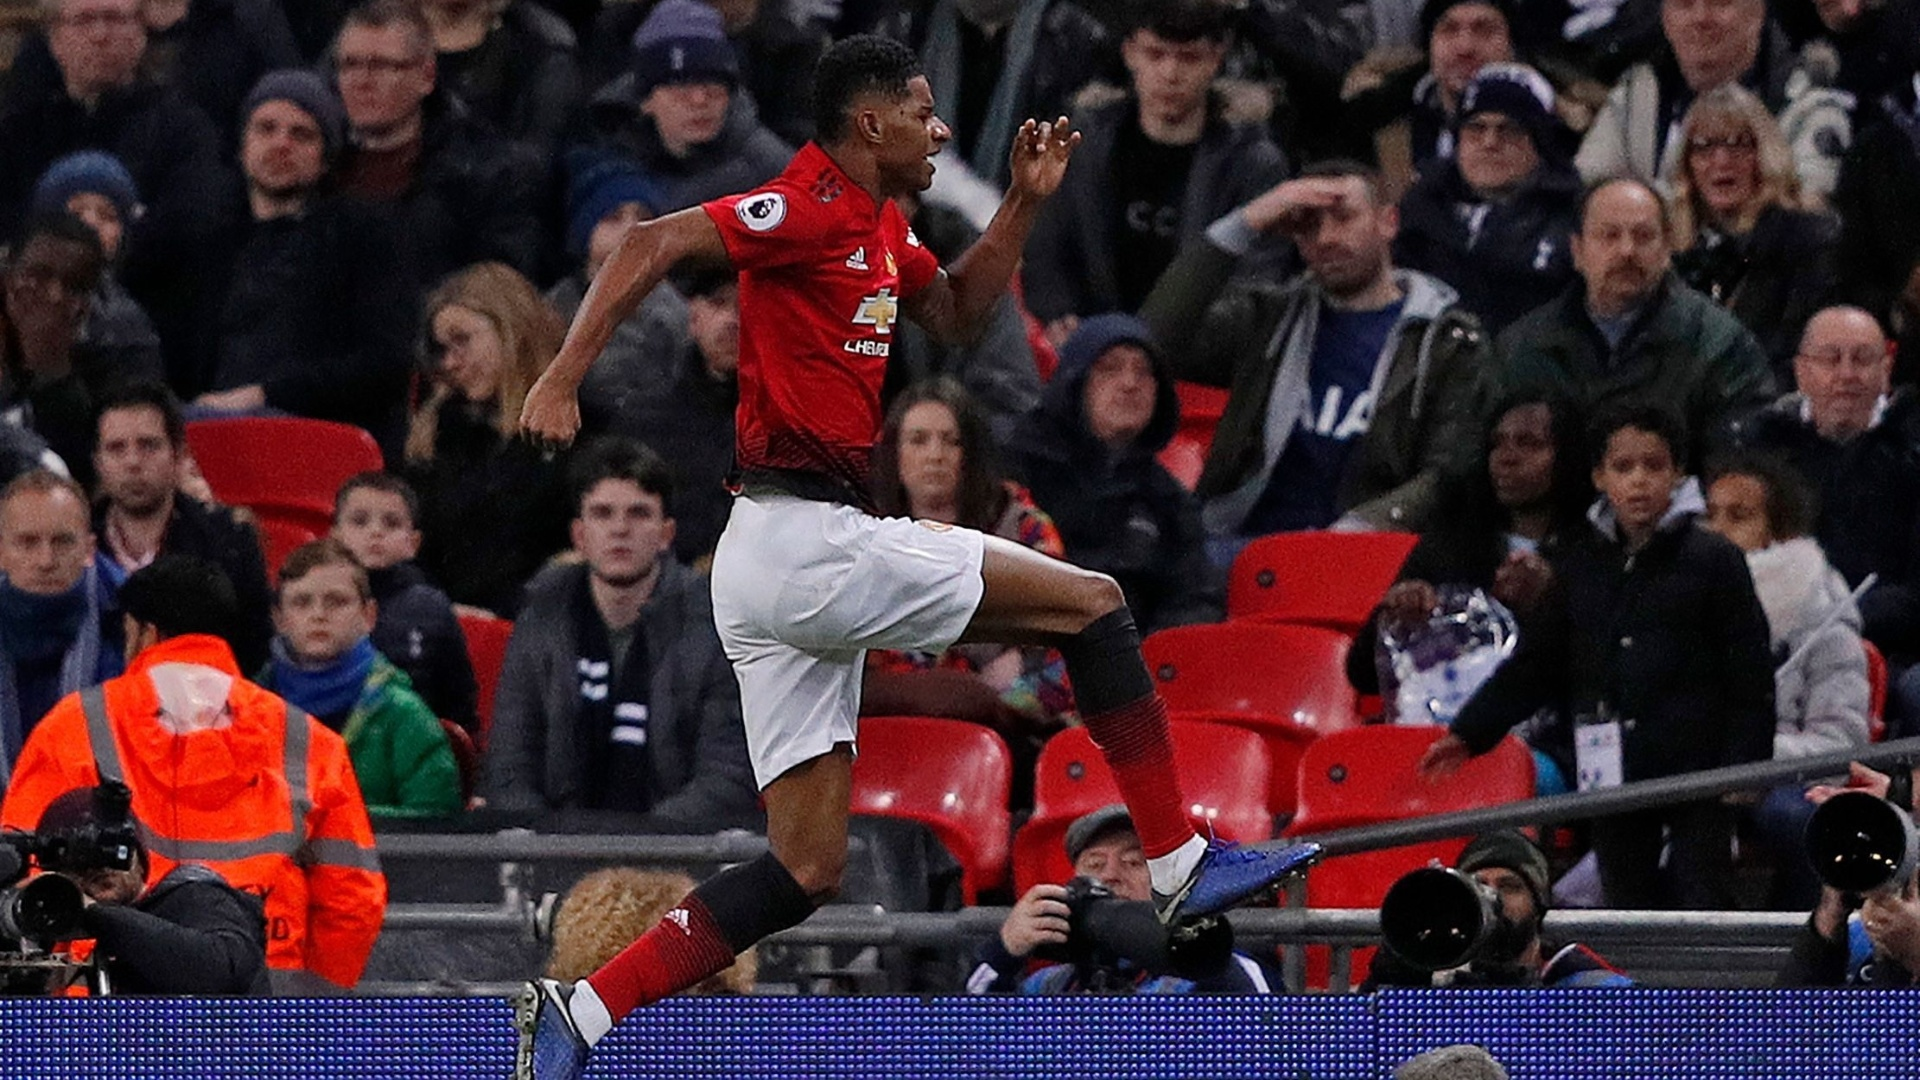 Rashford comemora gol do Manchester United